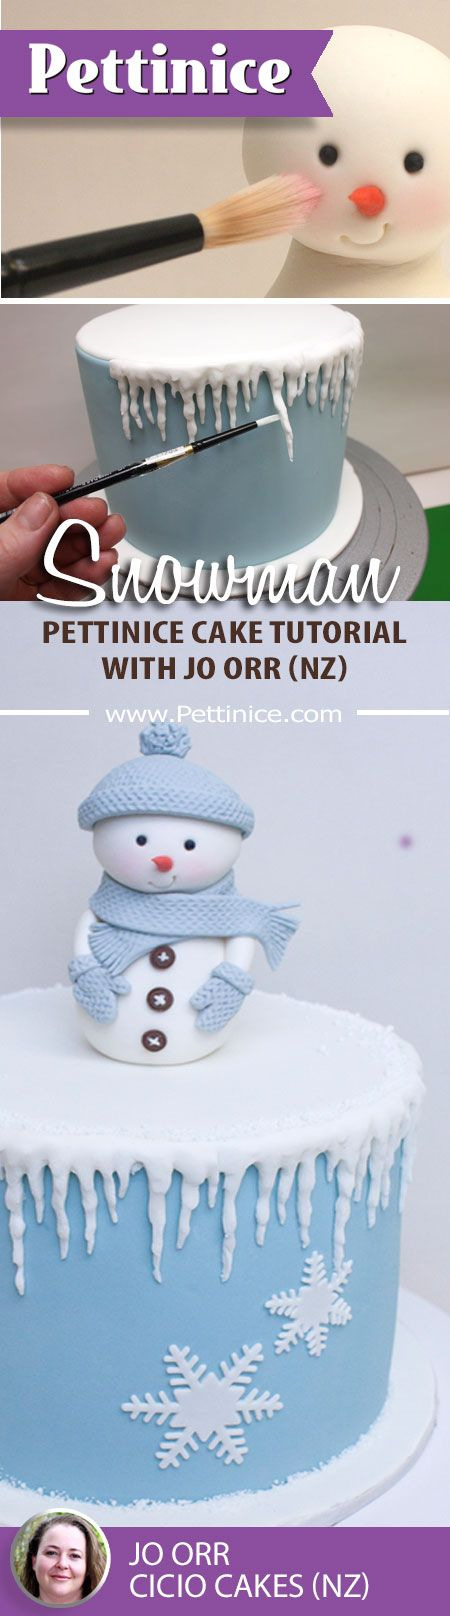 How to make this cute Christmas snowman with icicle cake tutorial from www.pettinice.com/tutorials